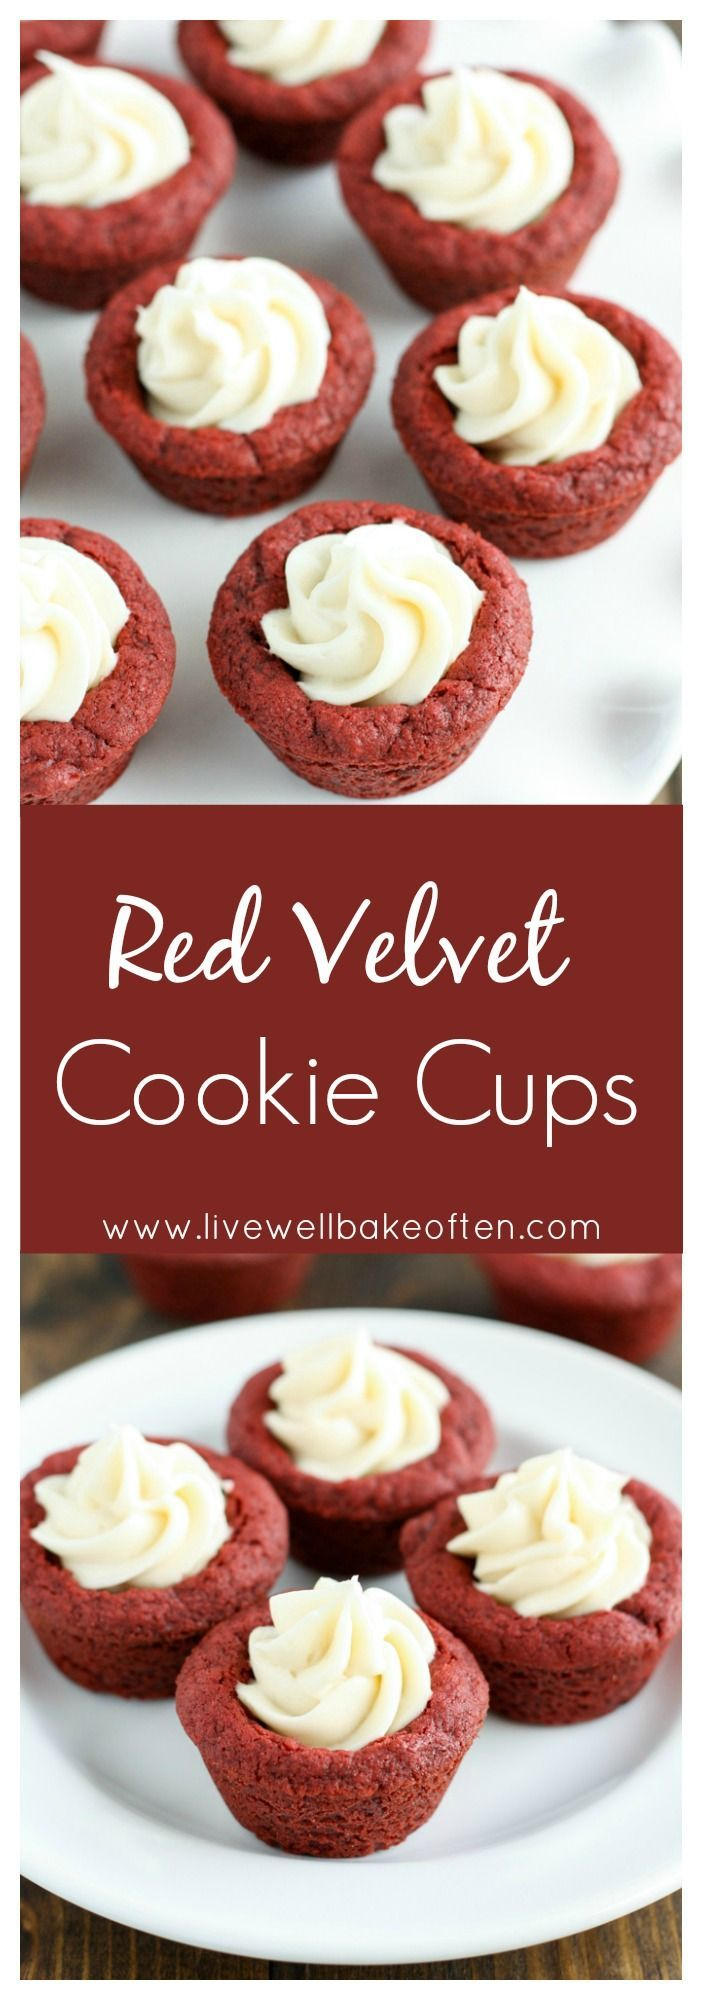 Red velvet cookie cups filled with a homemade cream cheese frosting!